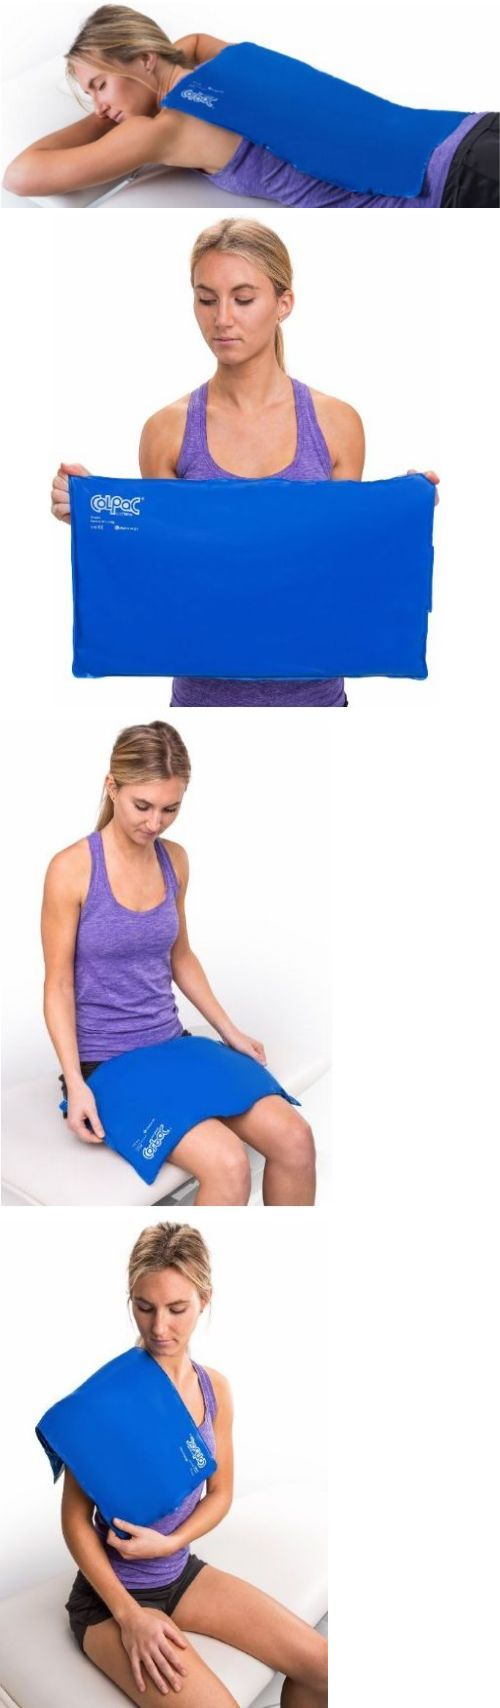 Cold and Hot Packs and Wraps: Cold Therapy Pad Reusable Gel Ice Pack Pain Relief Sports Injury X-Large No Tax -> BUY IT NOW ONLY: $30.75 on eBay!